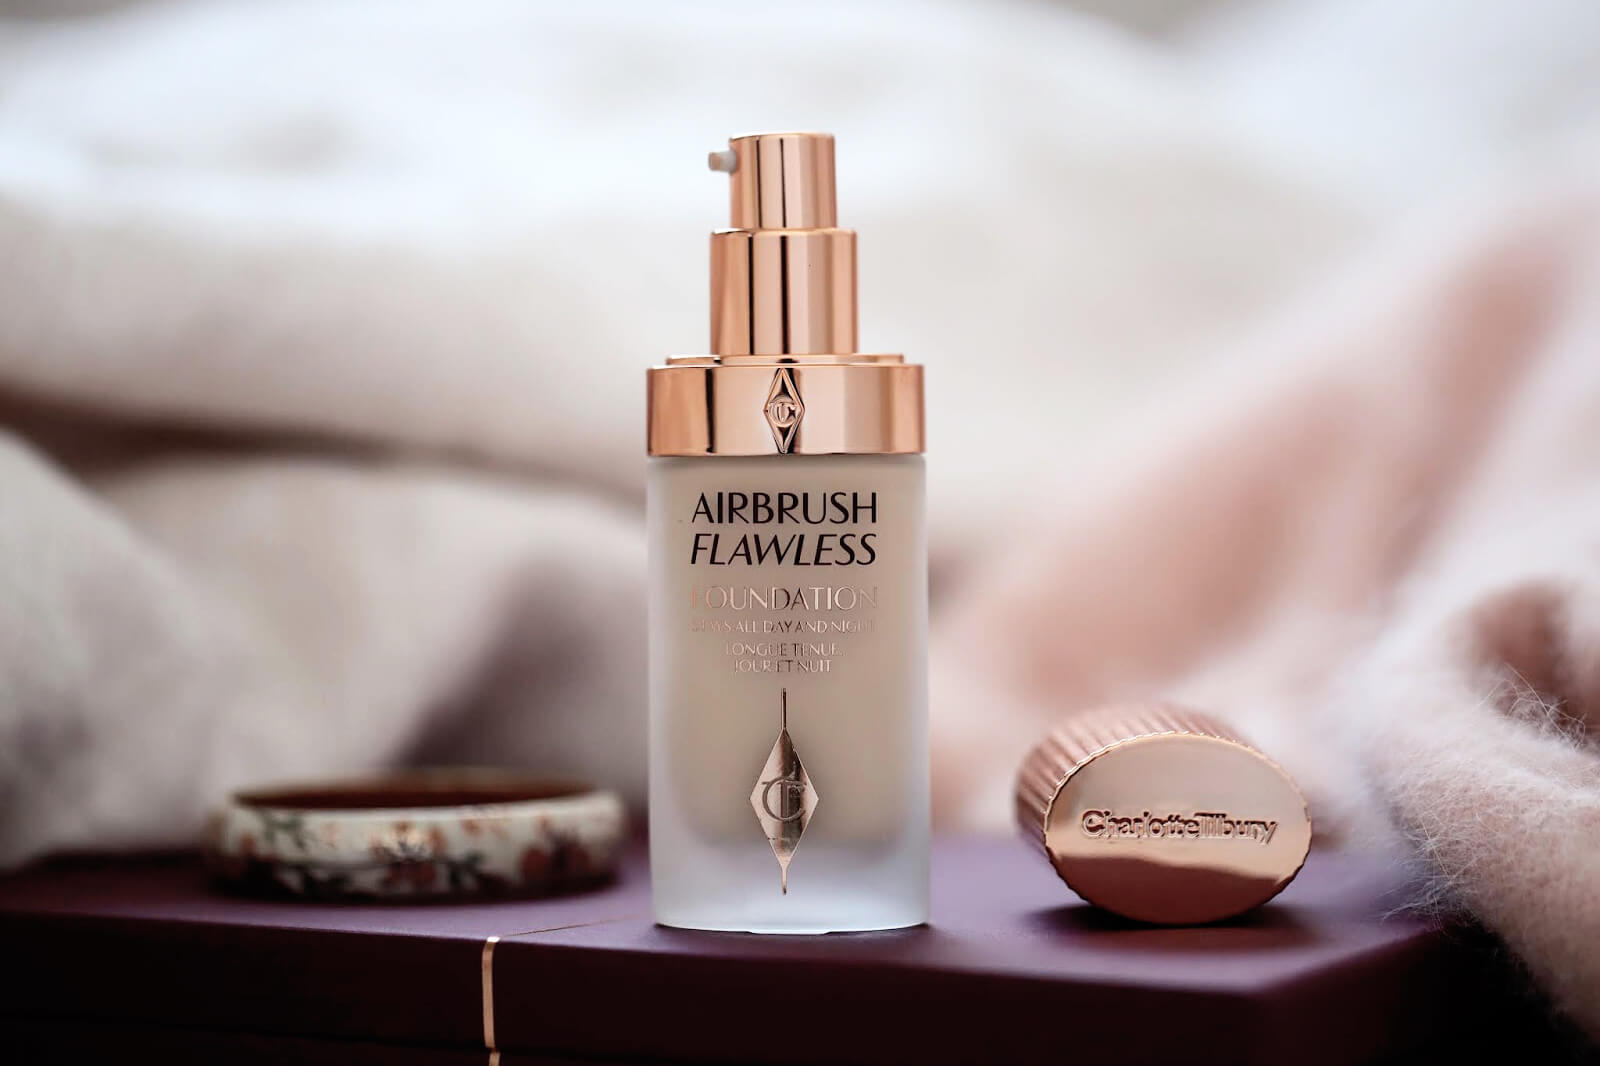 Charlotte Tilbury Airbrush Flawless Foundation Avis